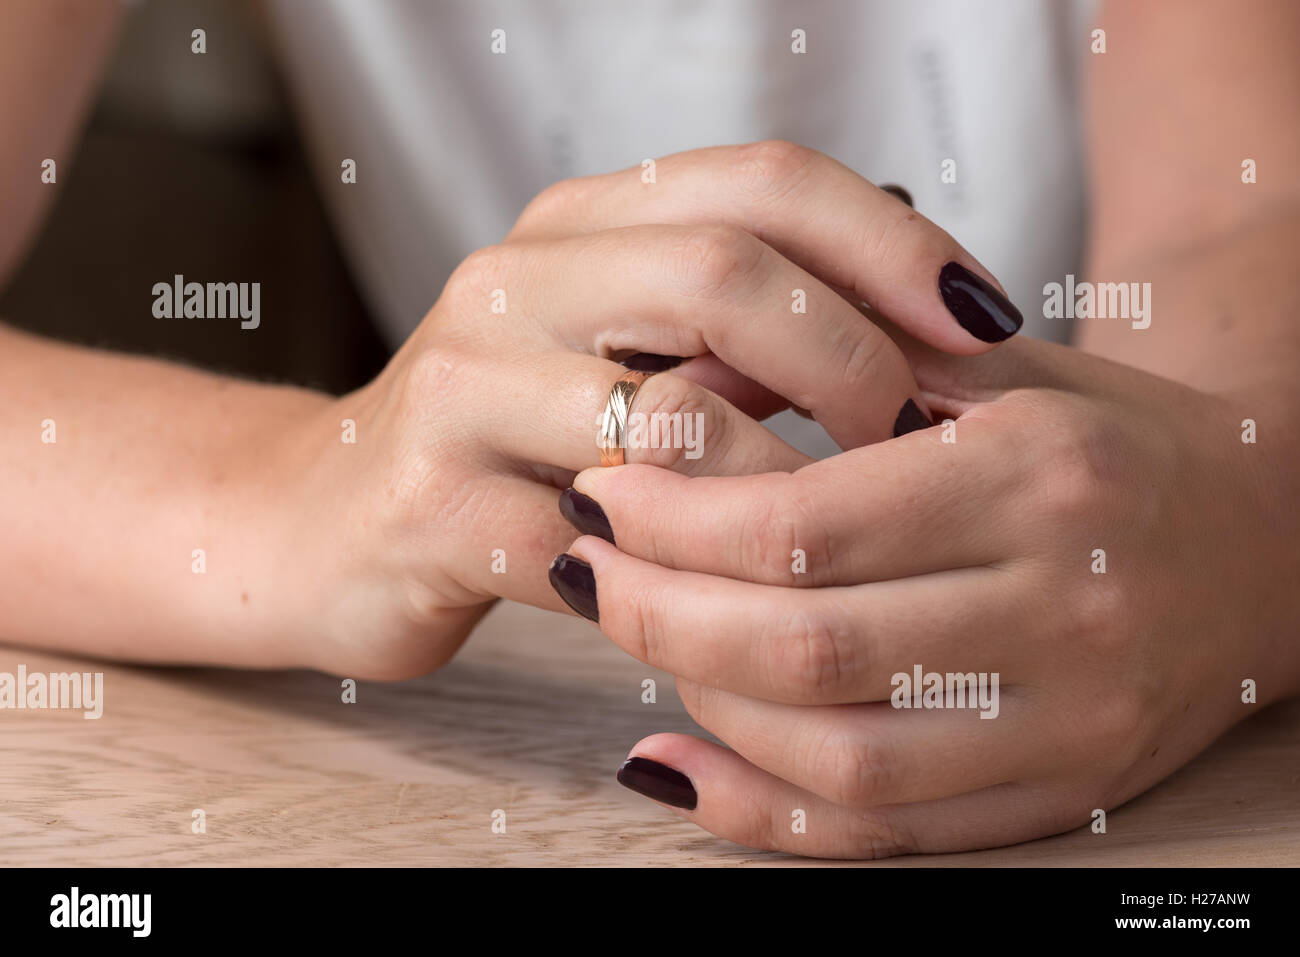 Divorce, separation: woman removing wedding or engagement ring - Stock Image